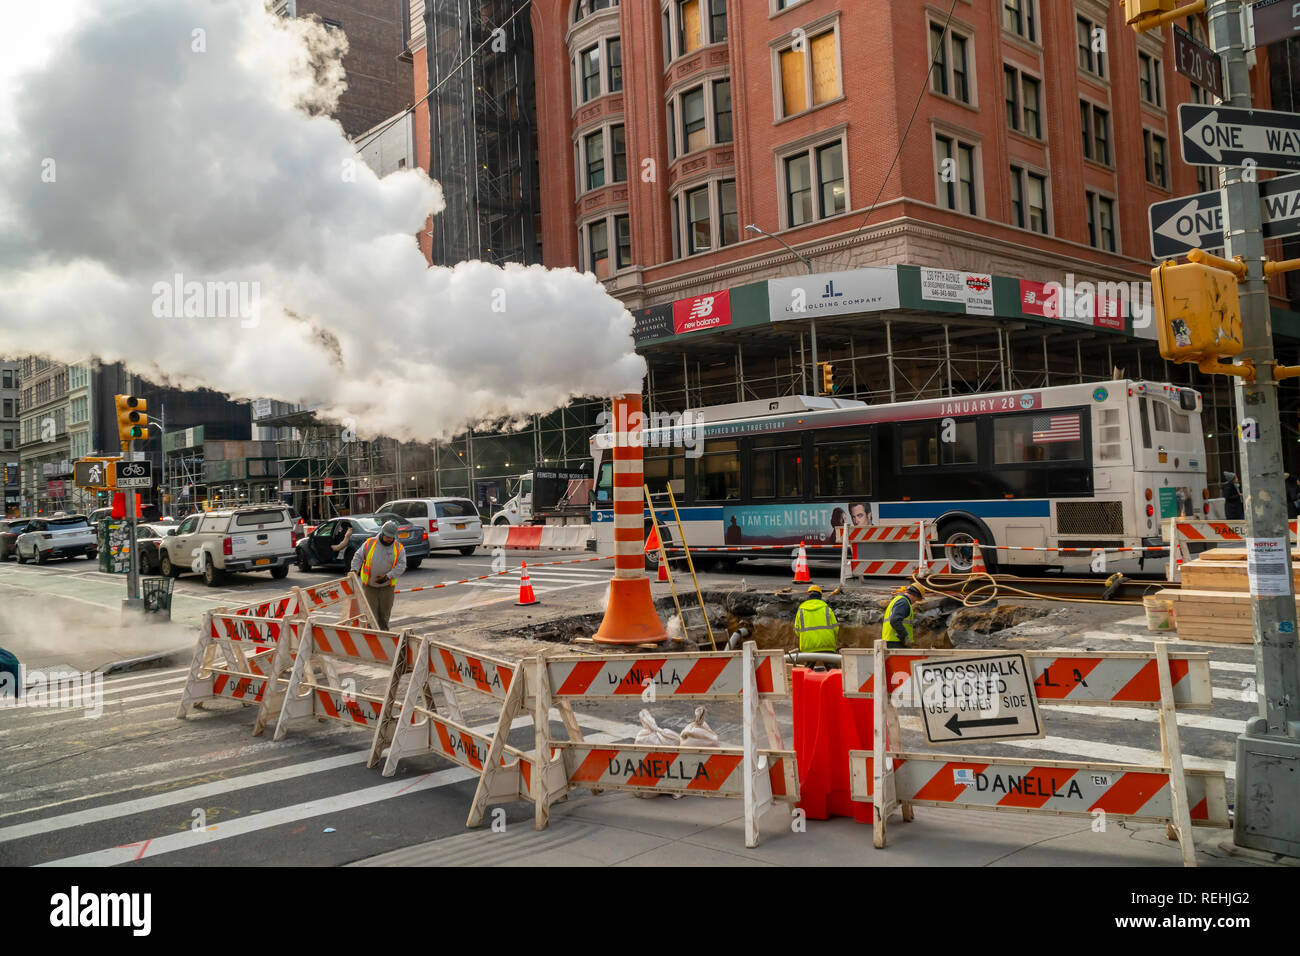 A Con Edison manhole vents excess steam during a pipe repair in the Flatiron neighborhood of New York on Saturday, January 12, 2019. (© Richard B. Levine) - Stock Image